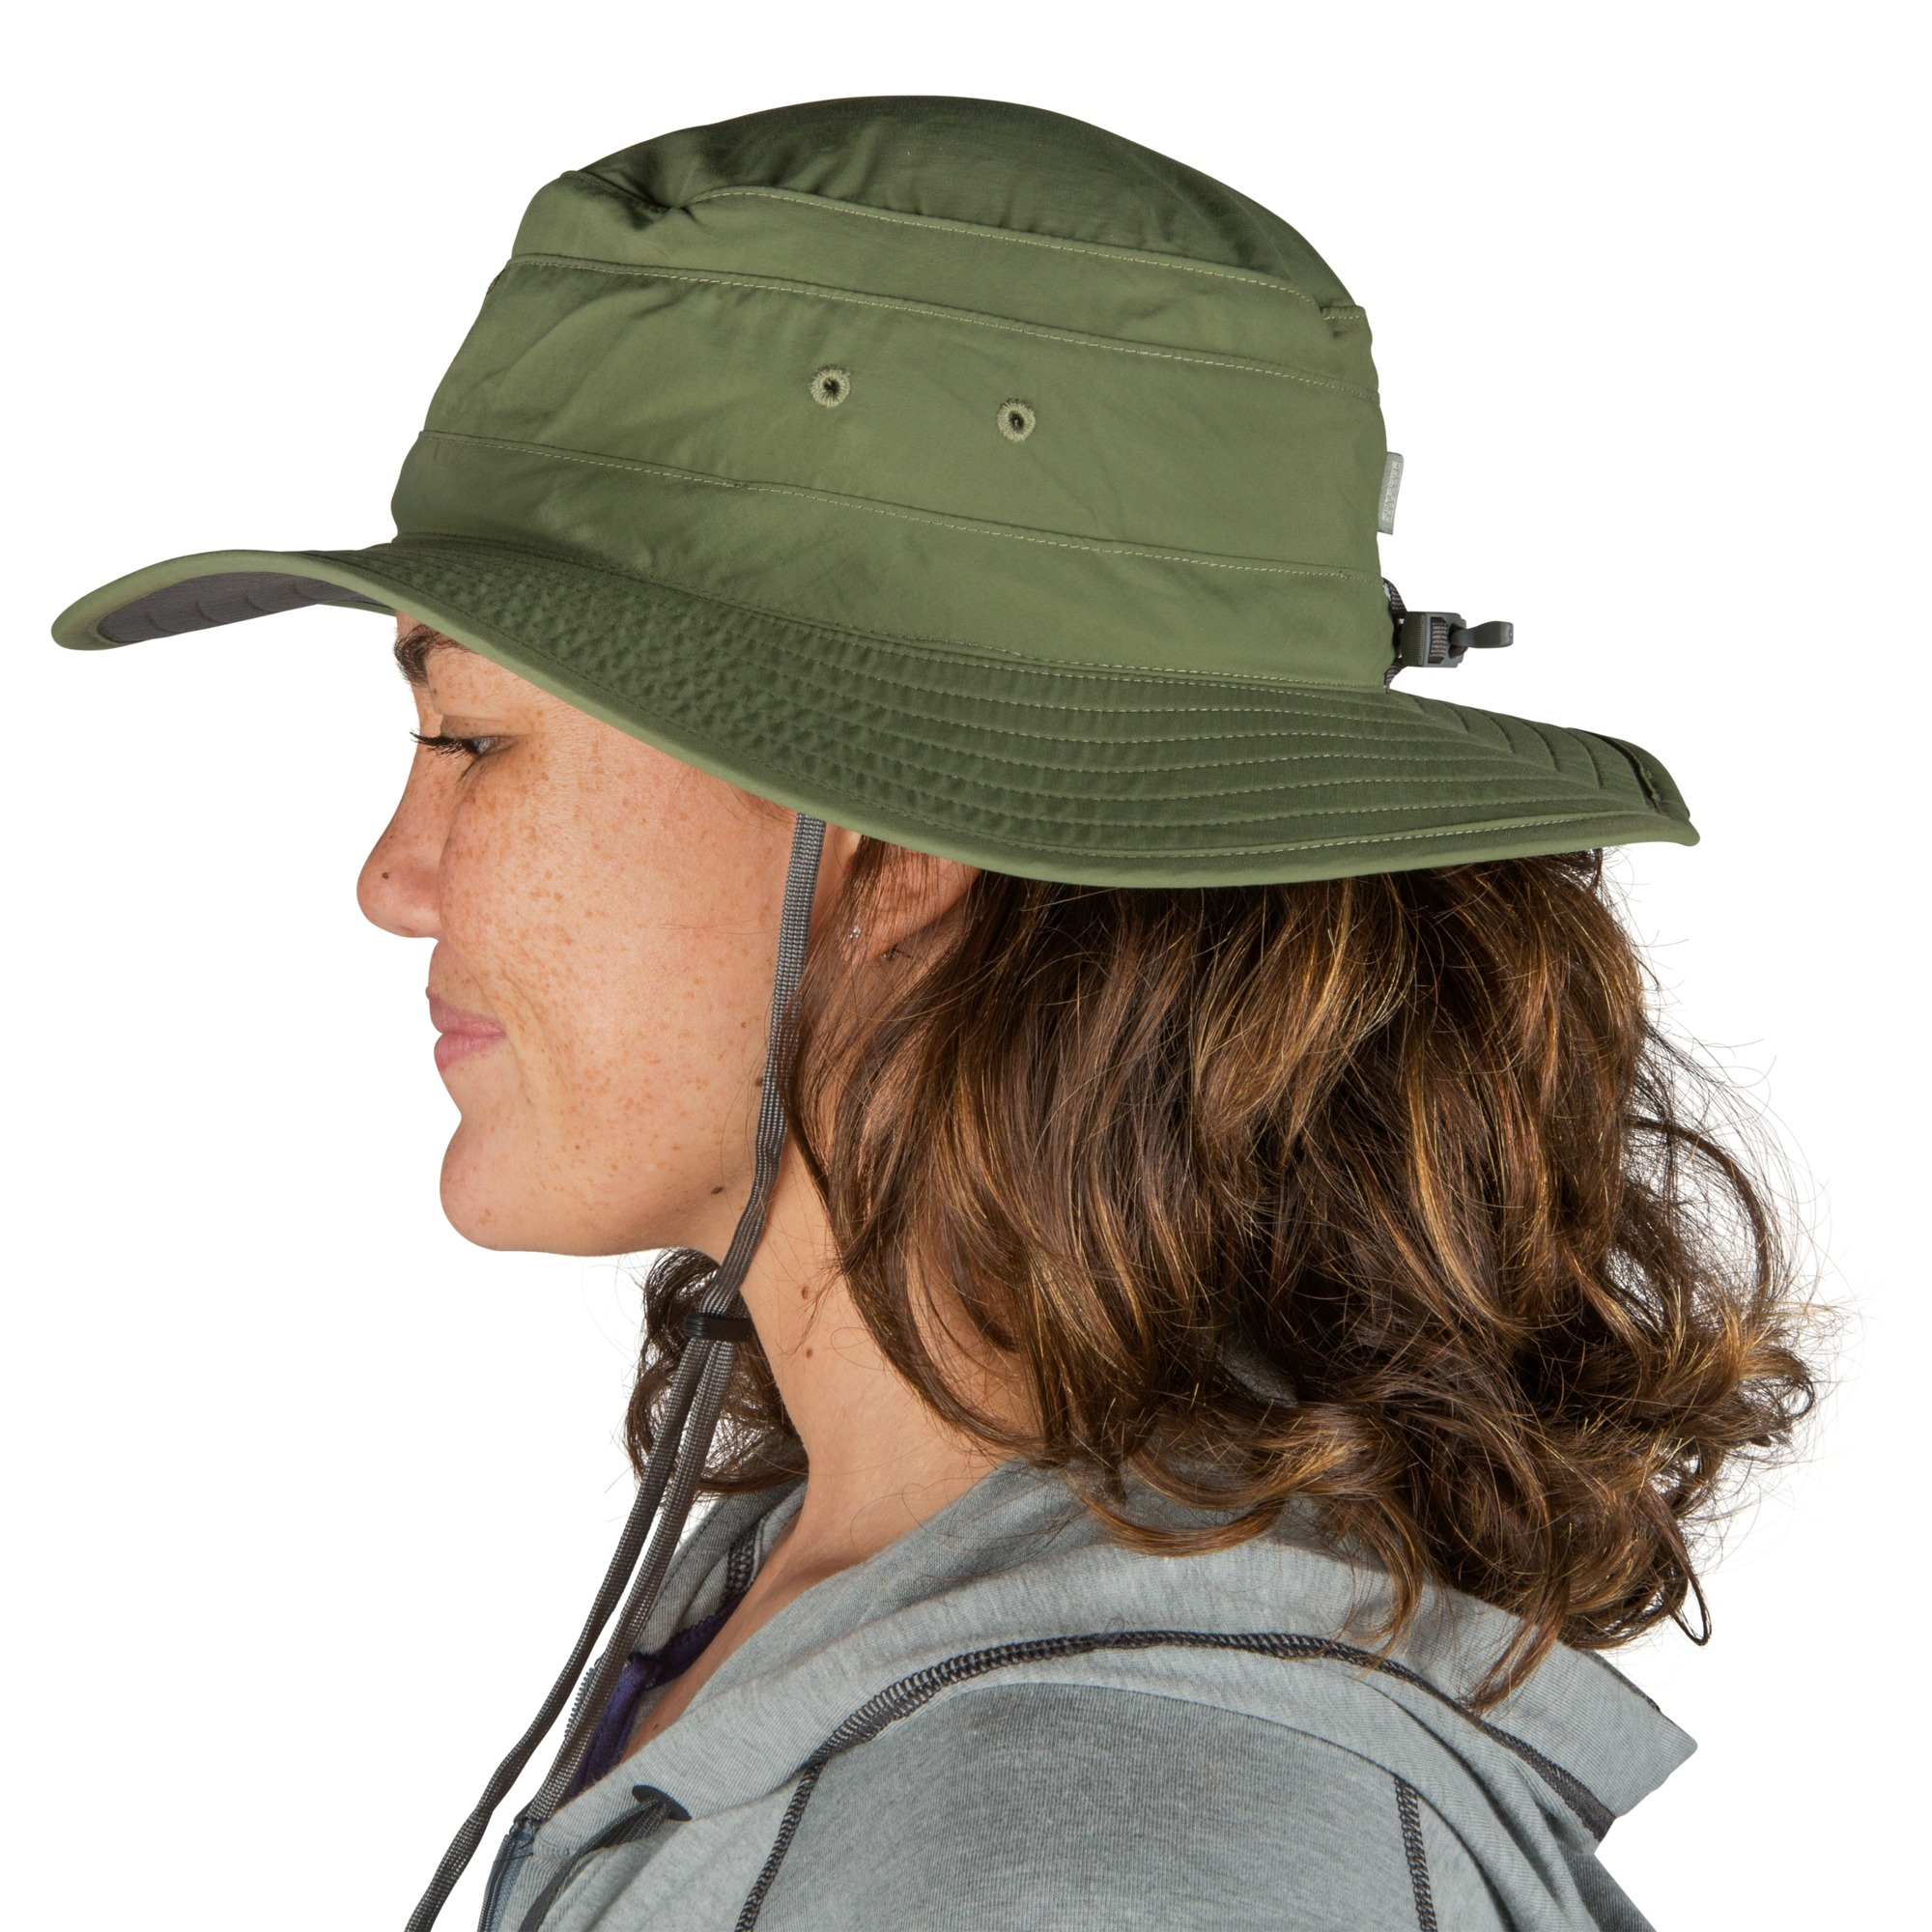 529fab3a173bfc Women's Solar Roller Sun Hat - moss | Outdoor Research